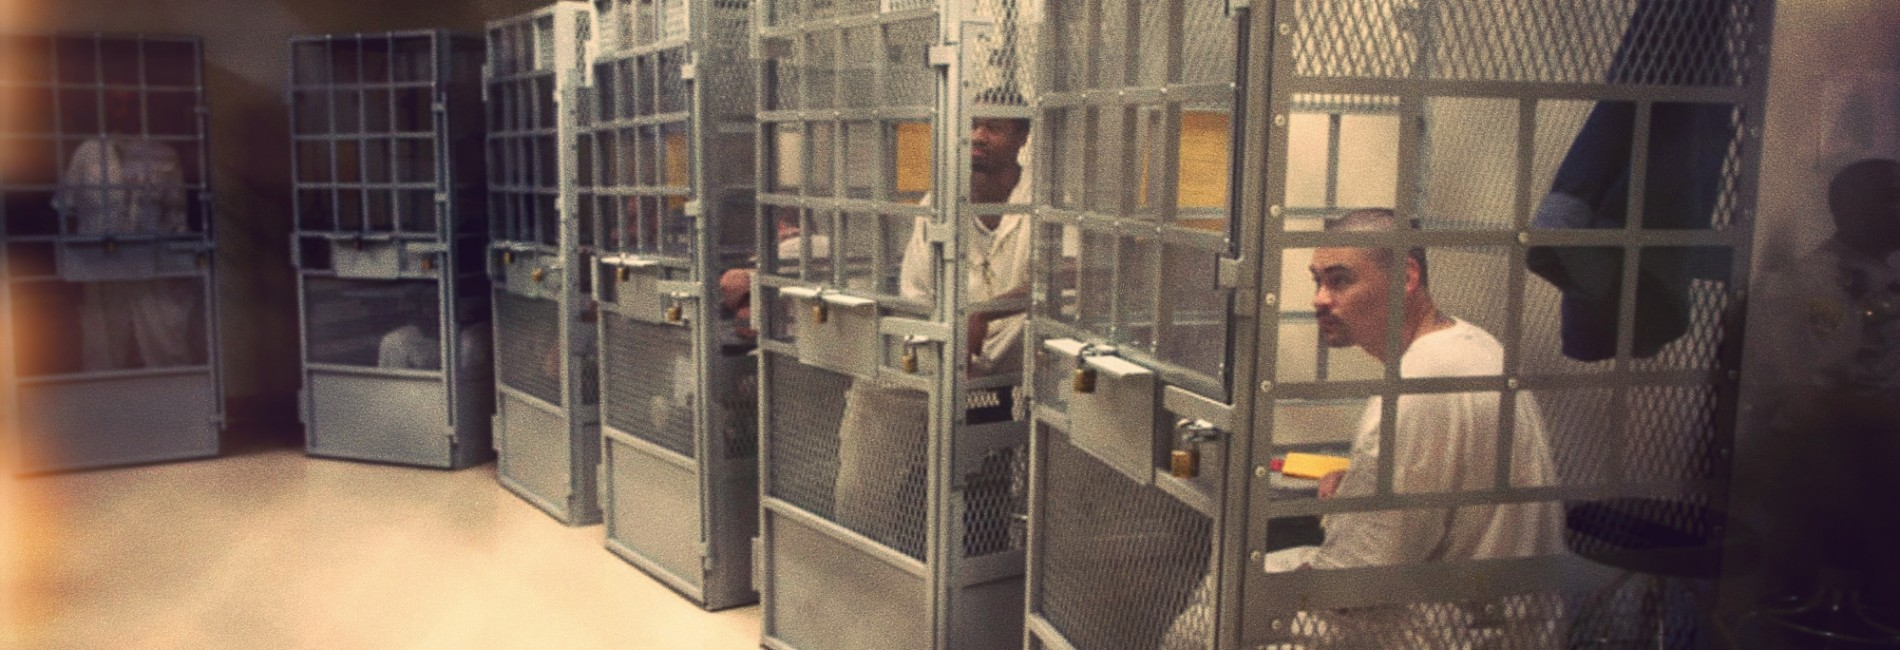 Cages in Solitary – San Quentin